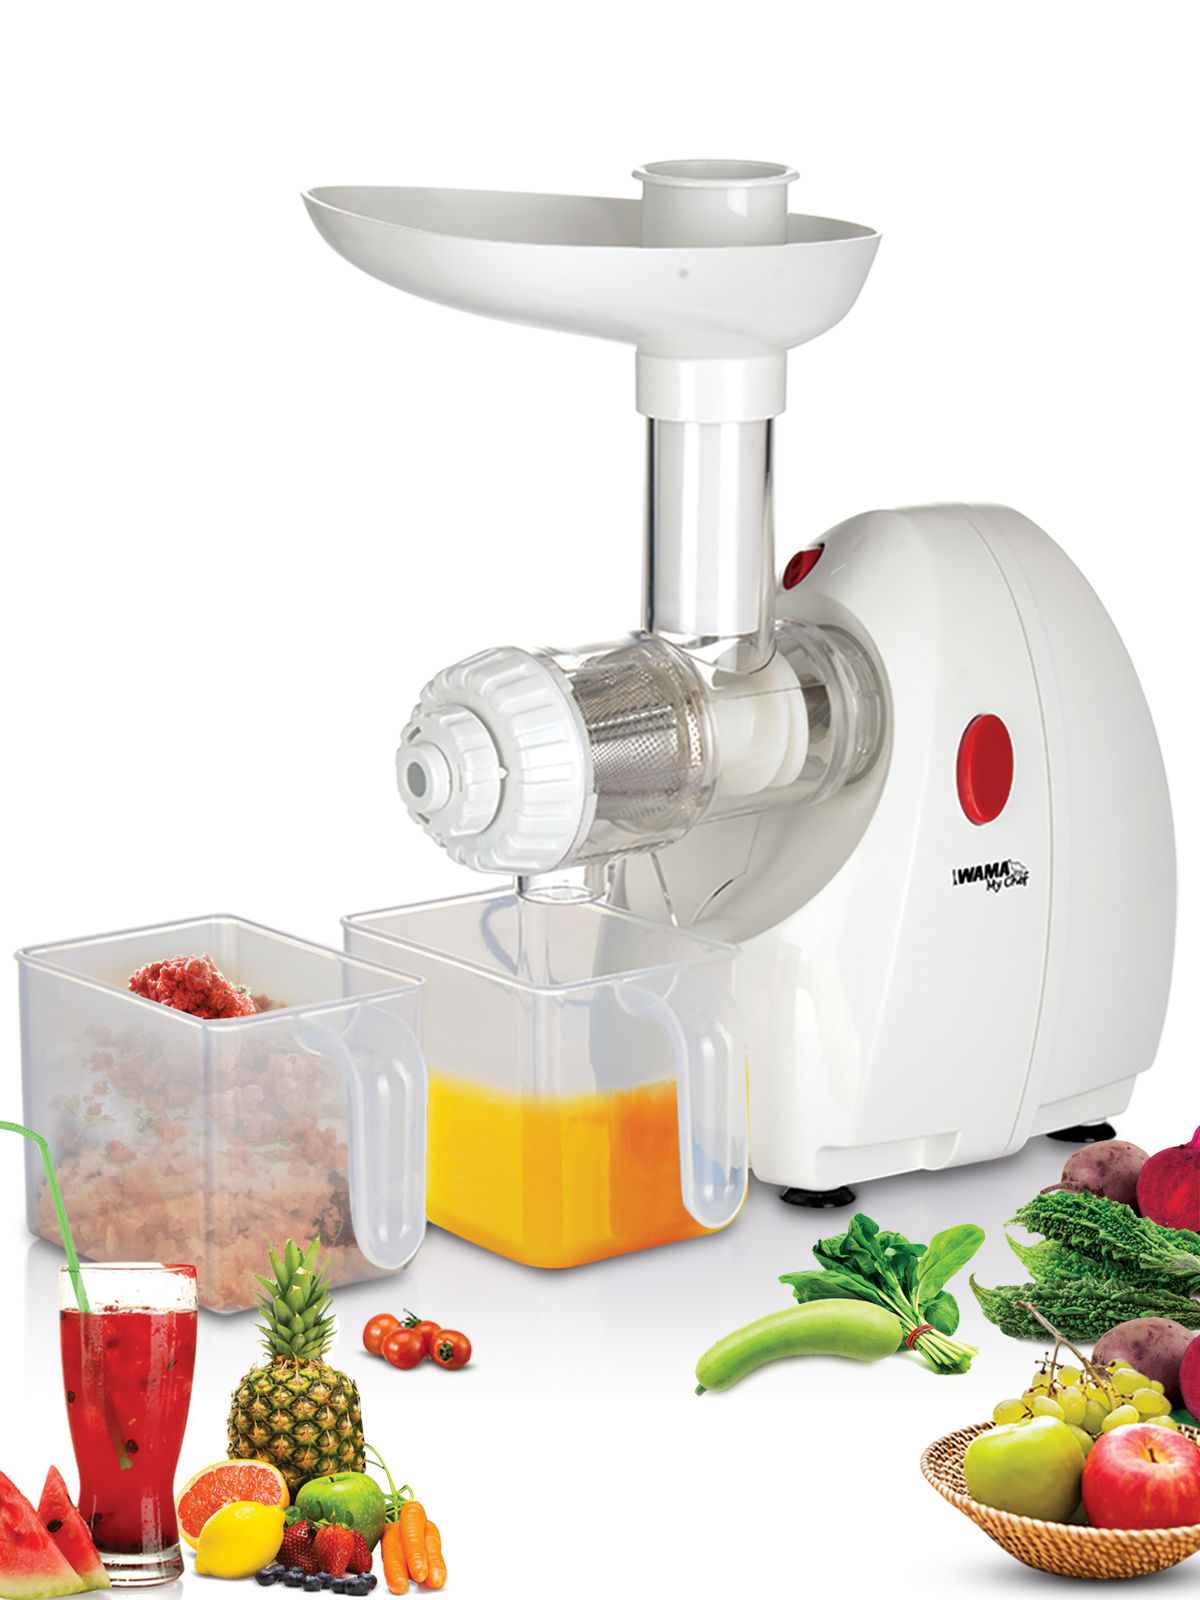 Beetroot Slow Juicer : Buy WAMA Slow Juicer Online at Best Price in India on Naaptol.com